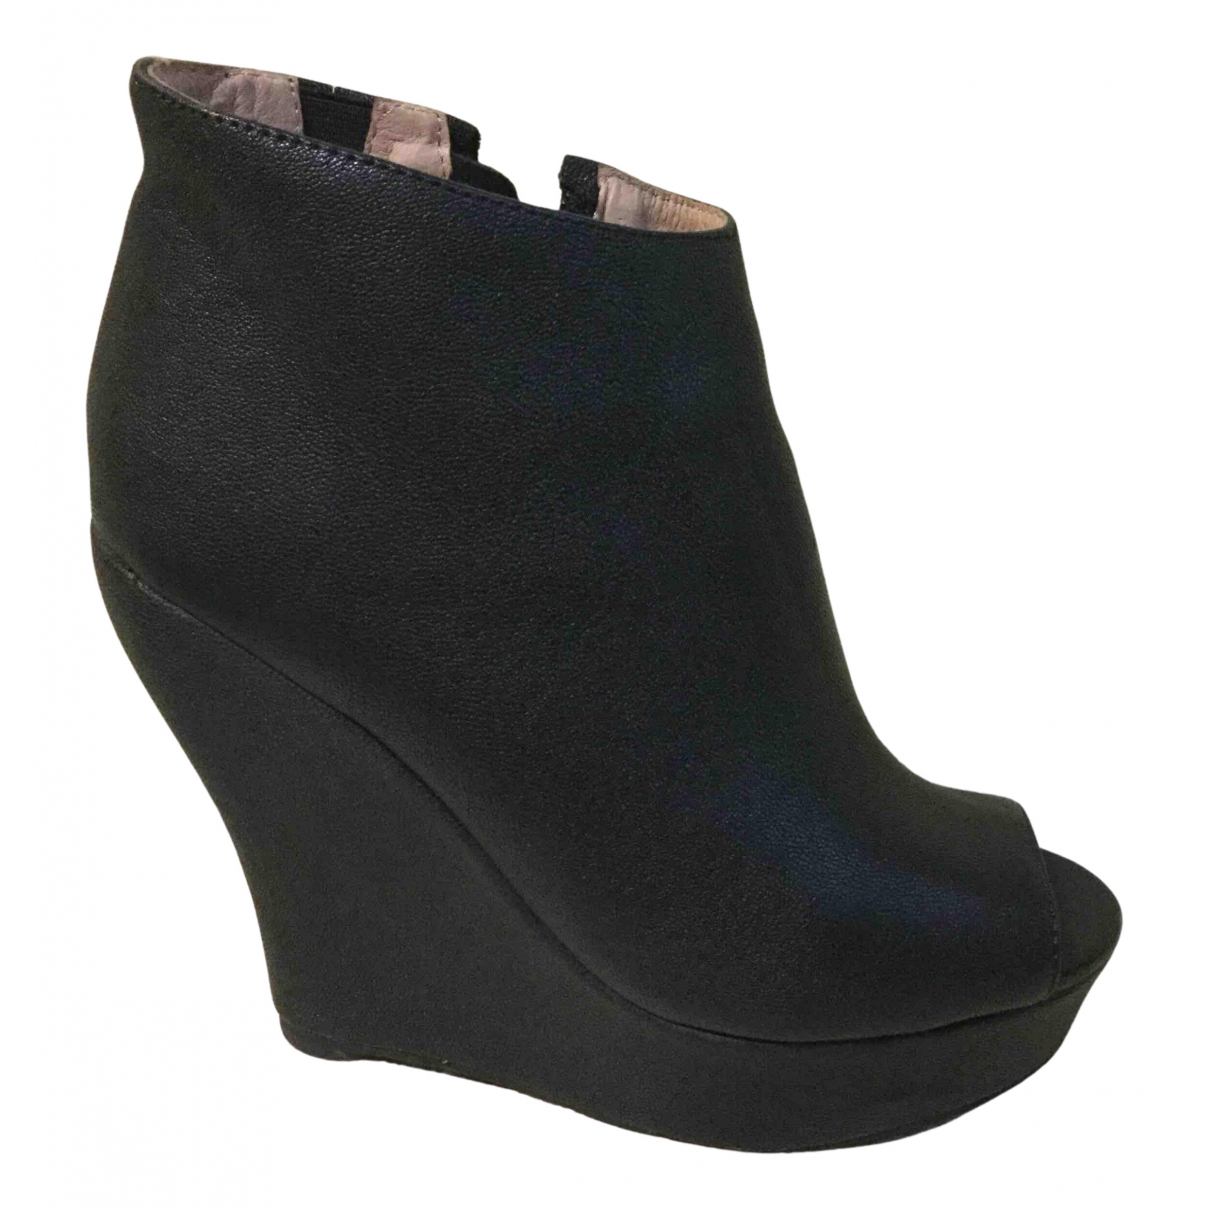 Jeffrey Campbell N Black Leather Ankle boots for Women 37 IT